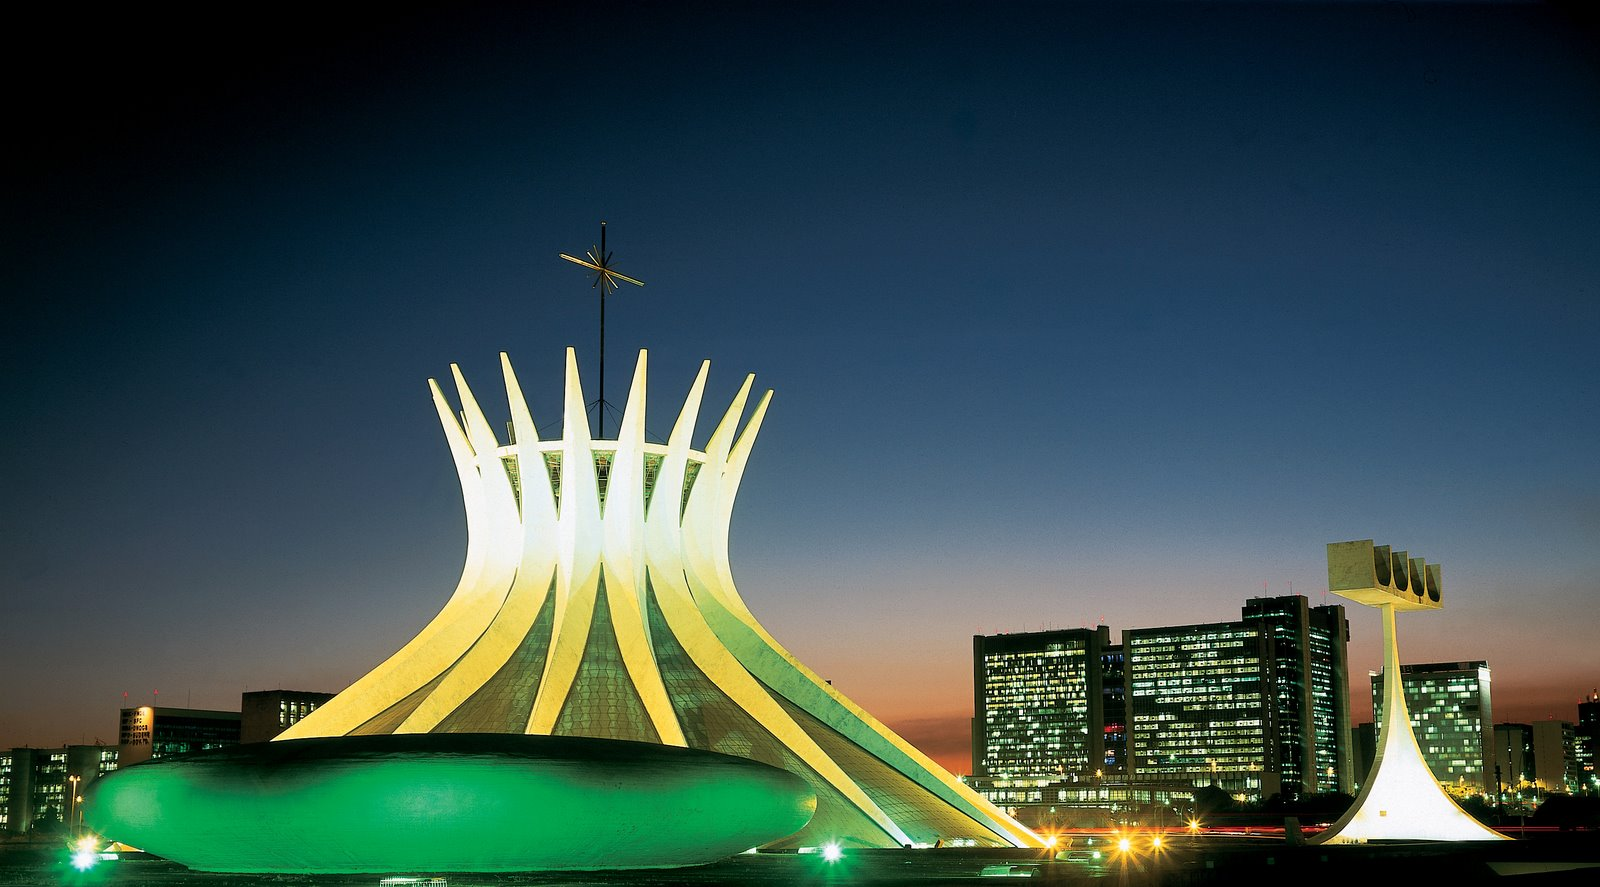 Brasilia City Guid brasilia city guide Brasilia City Guide catedral de brasilia